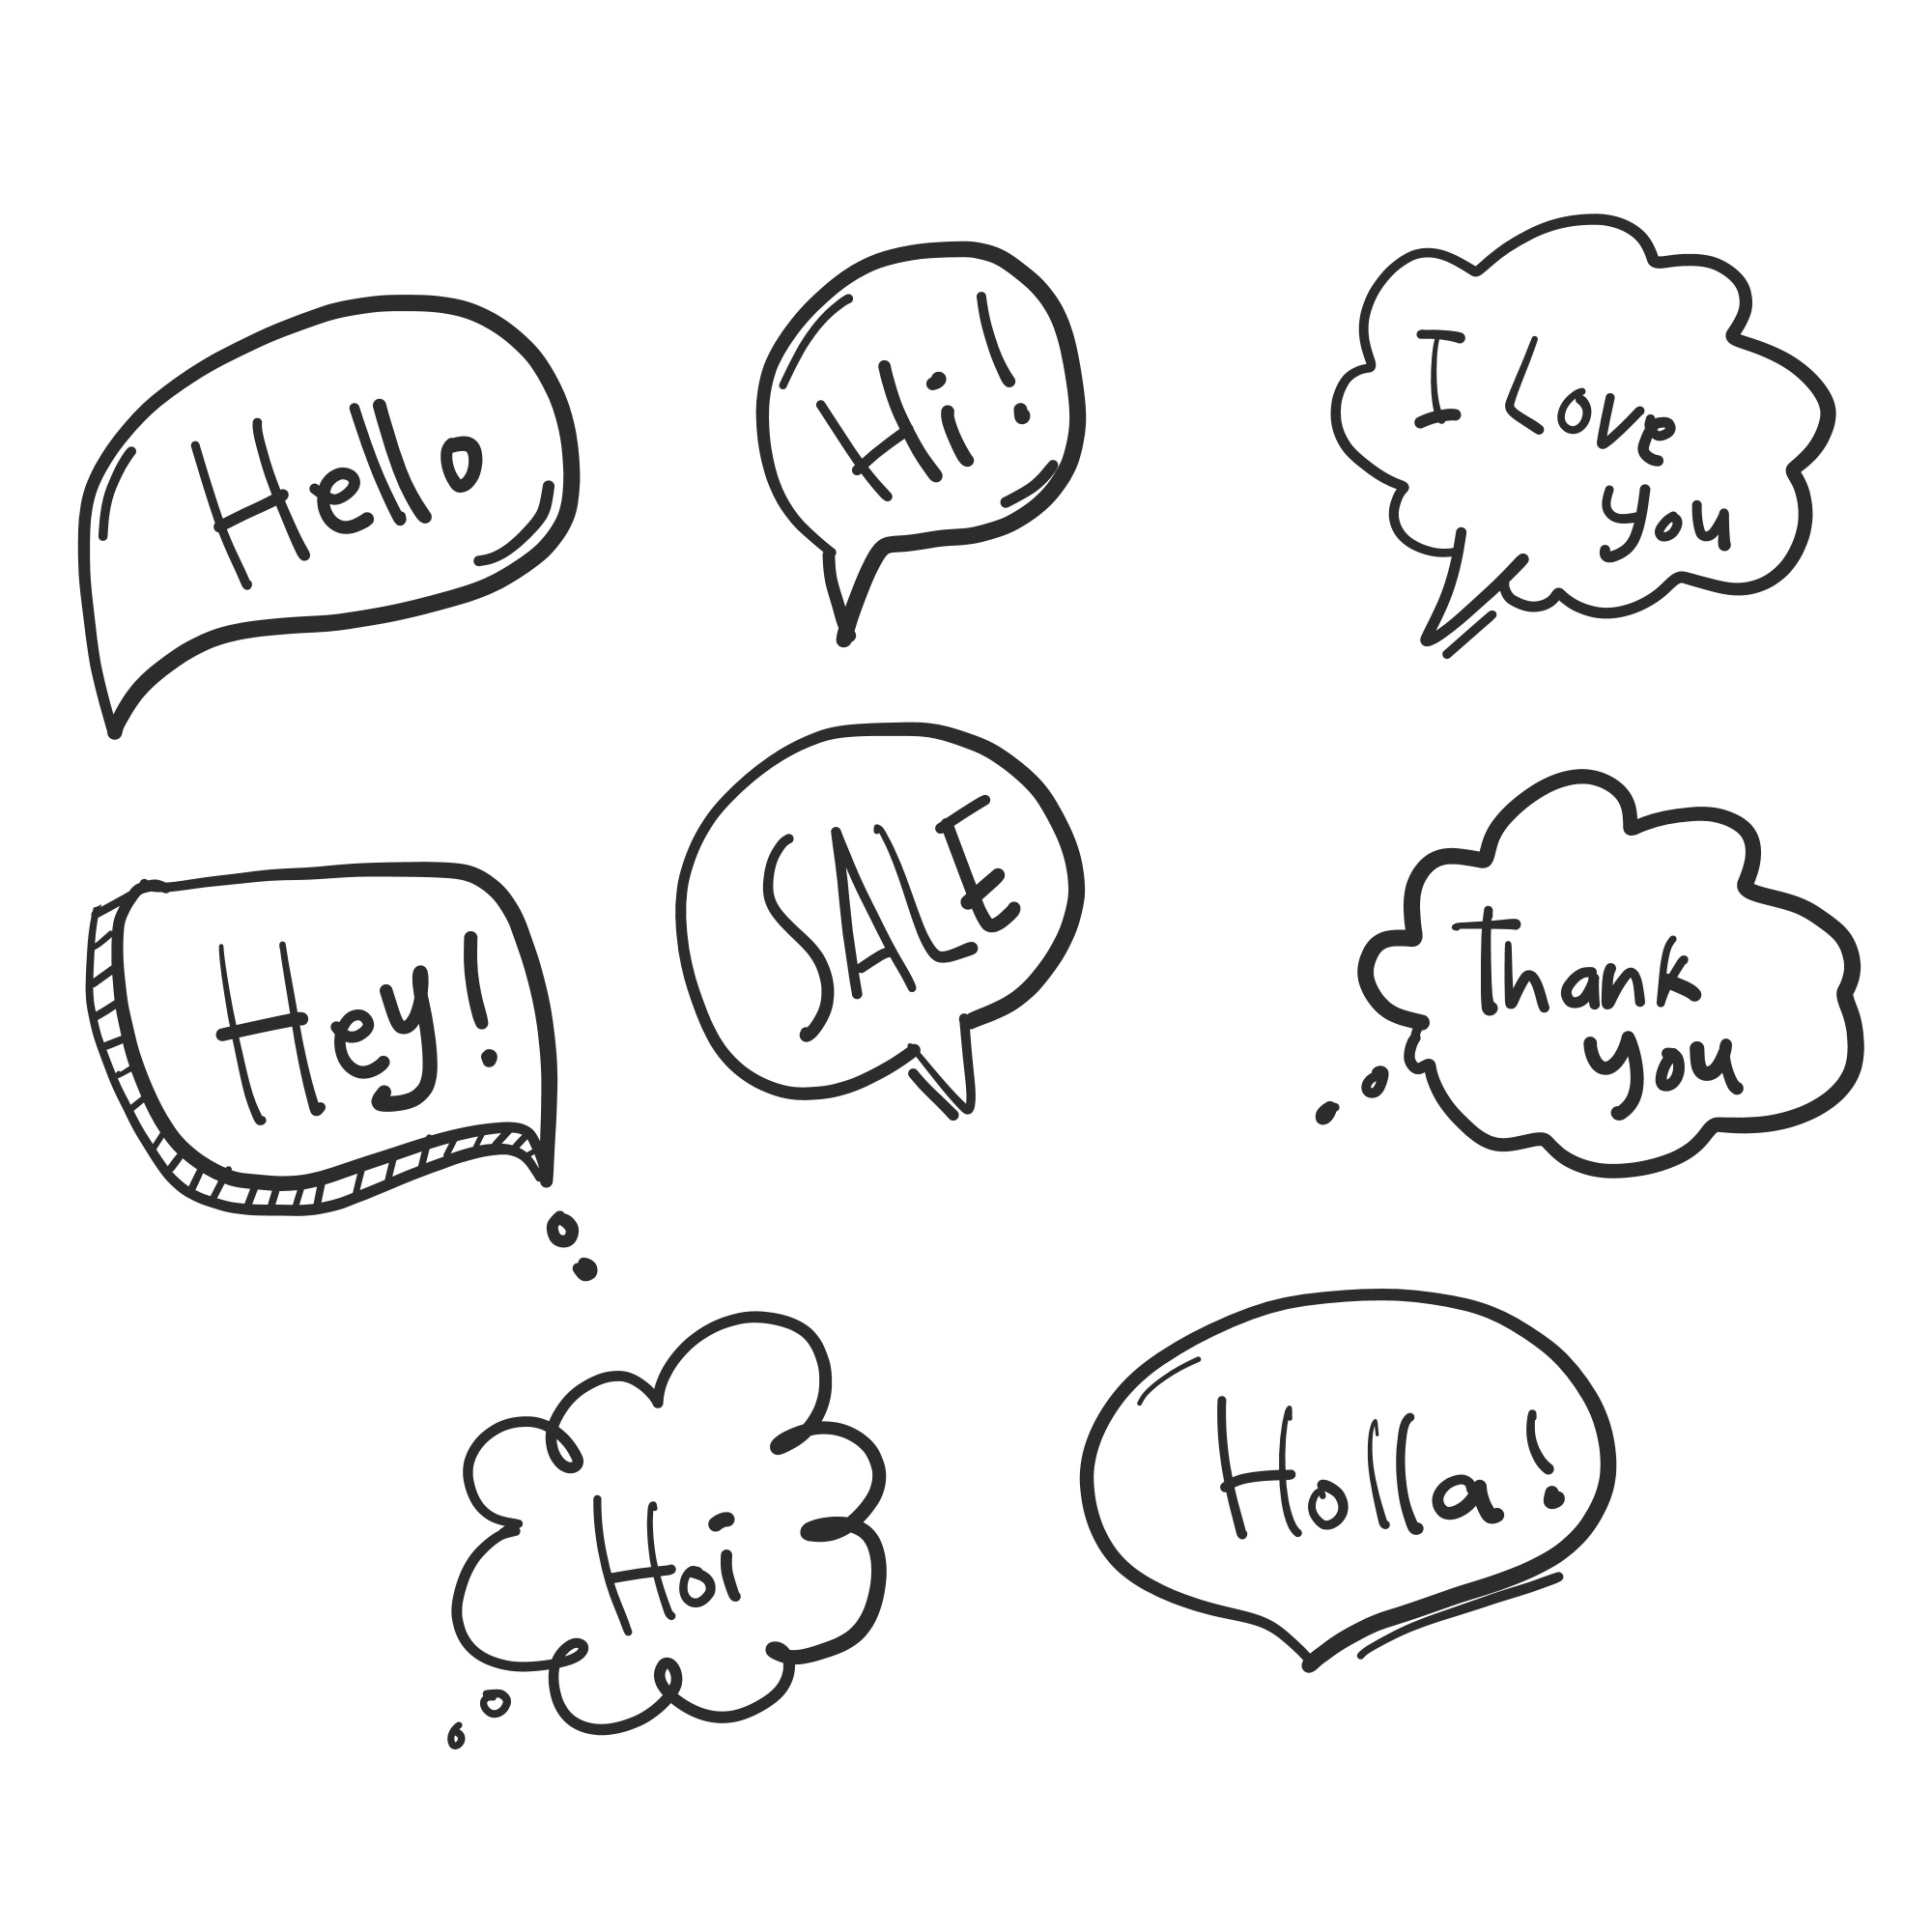 Doodle speech bubble vector